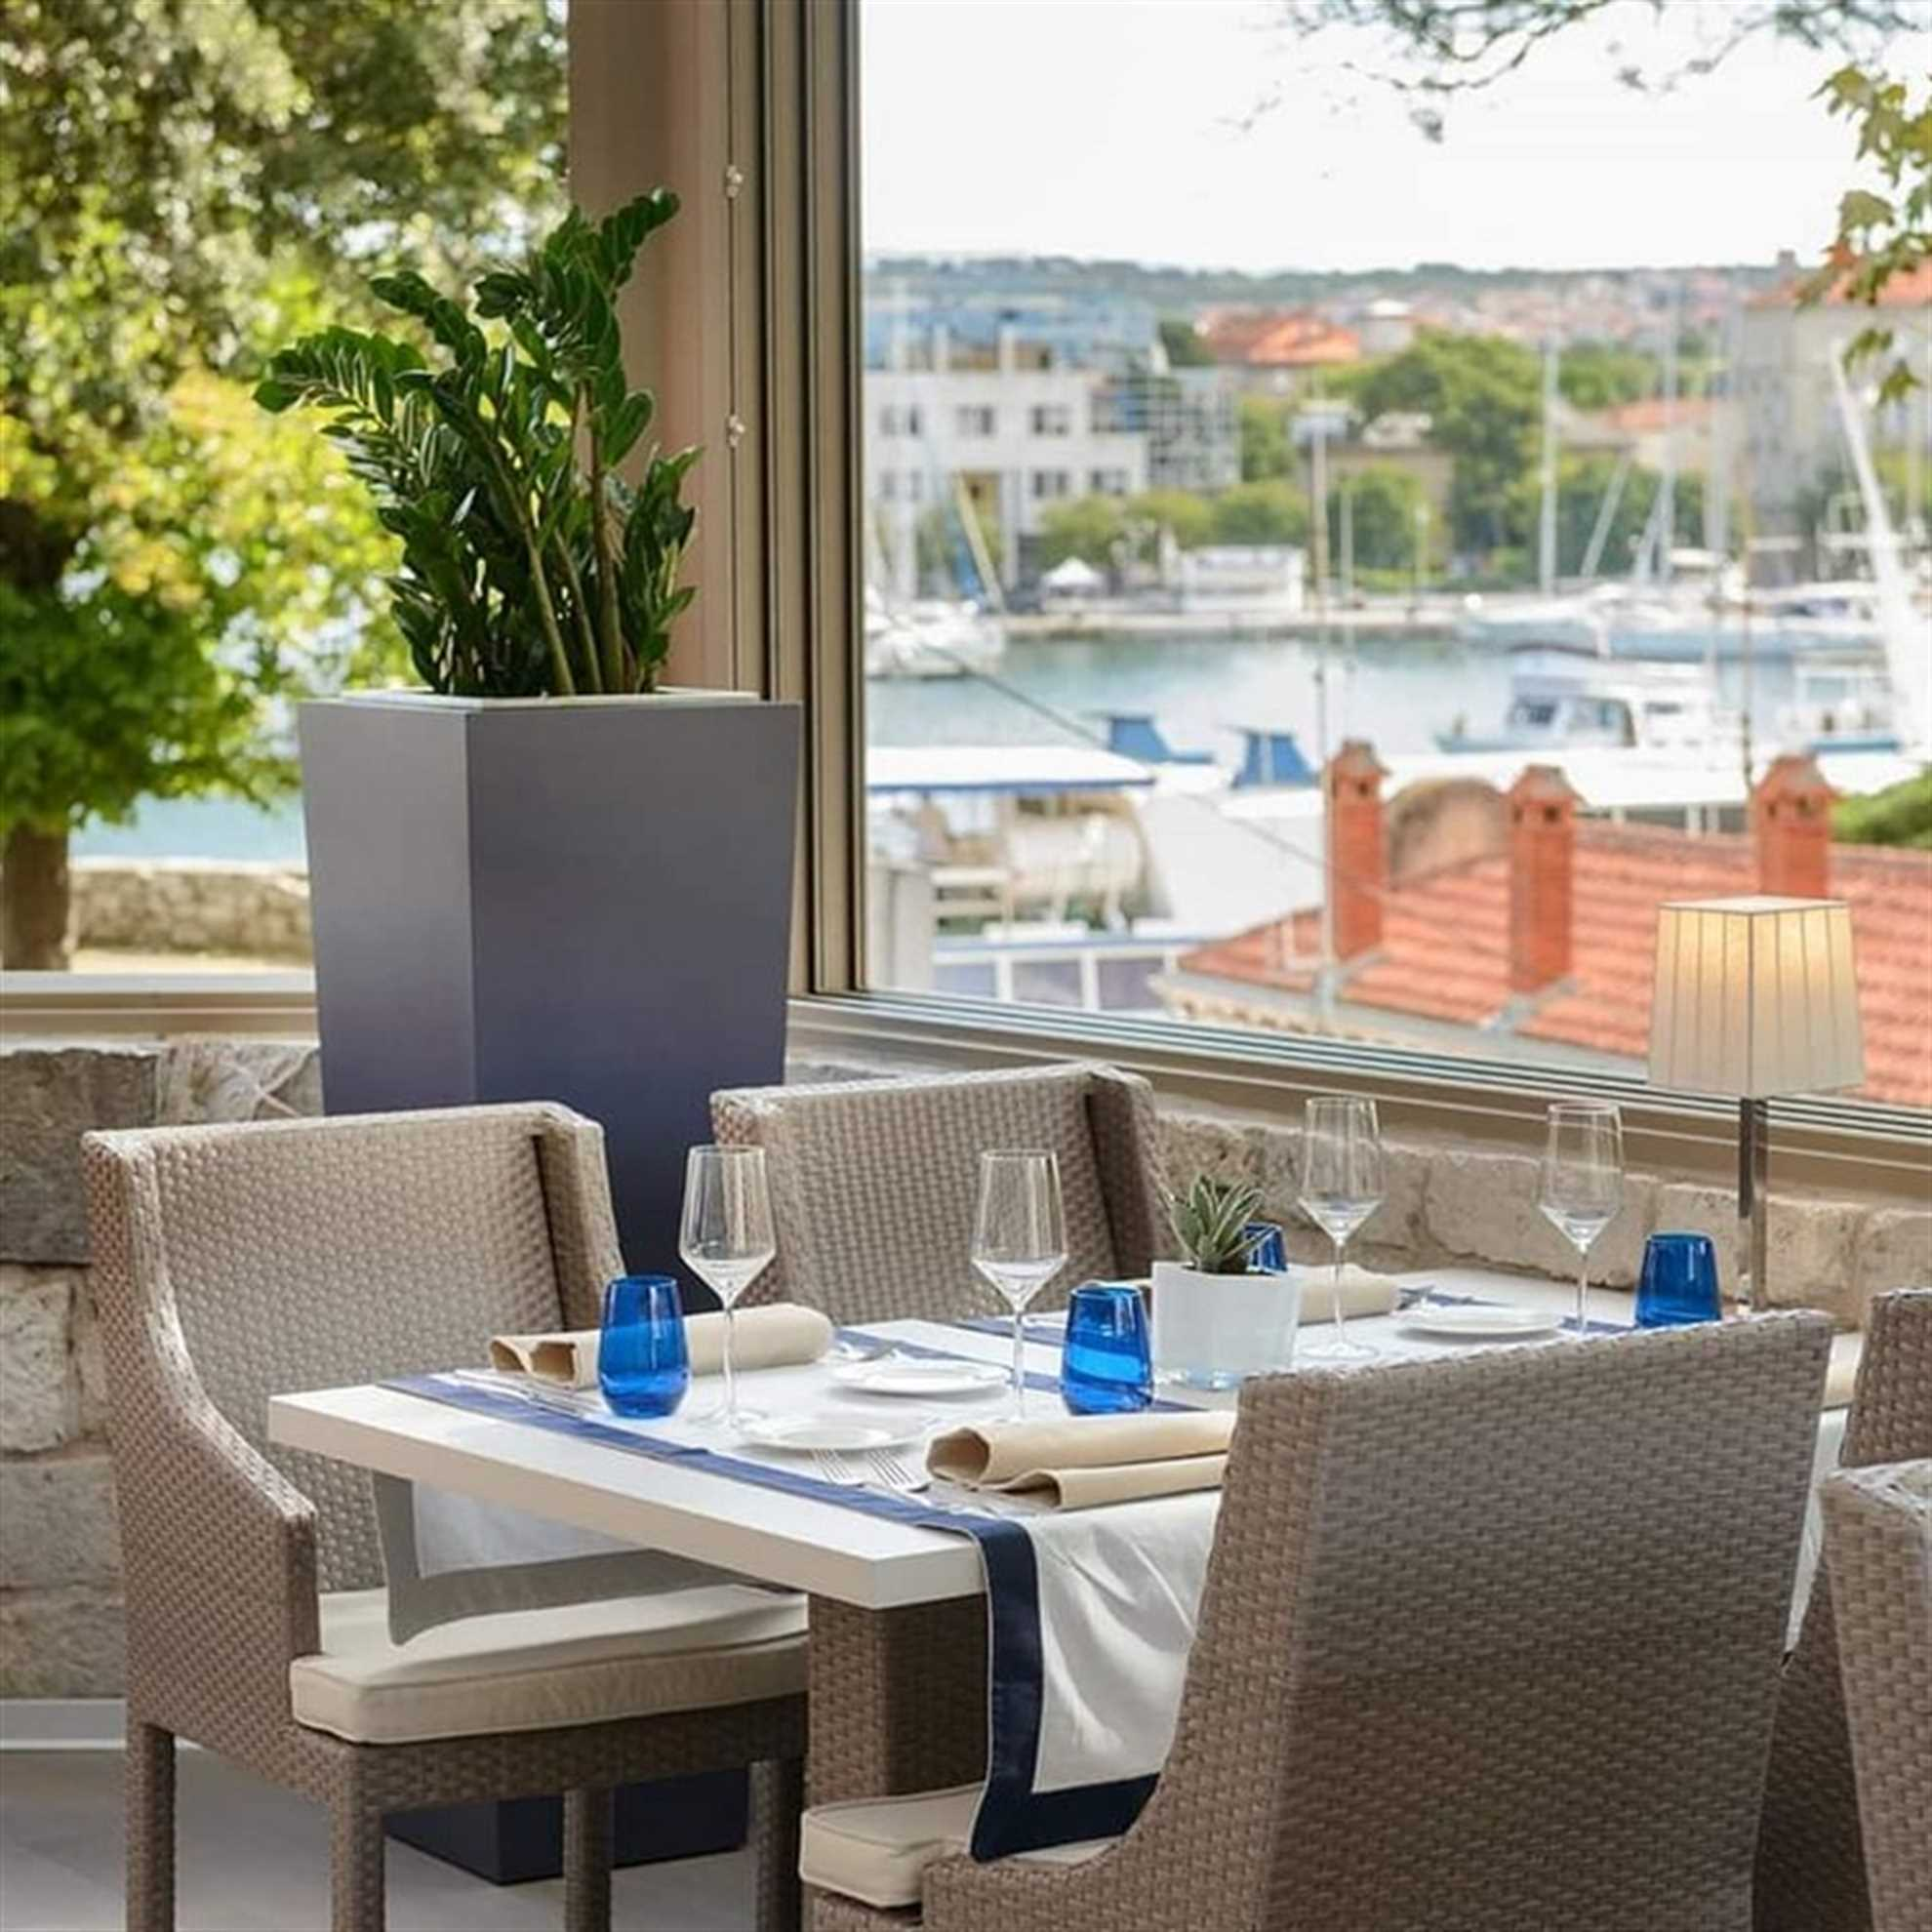 Restaurant Kastel in Zadar